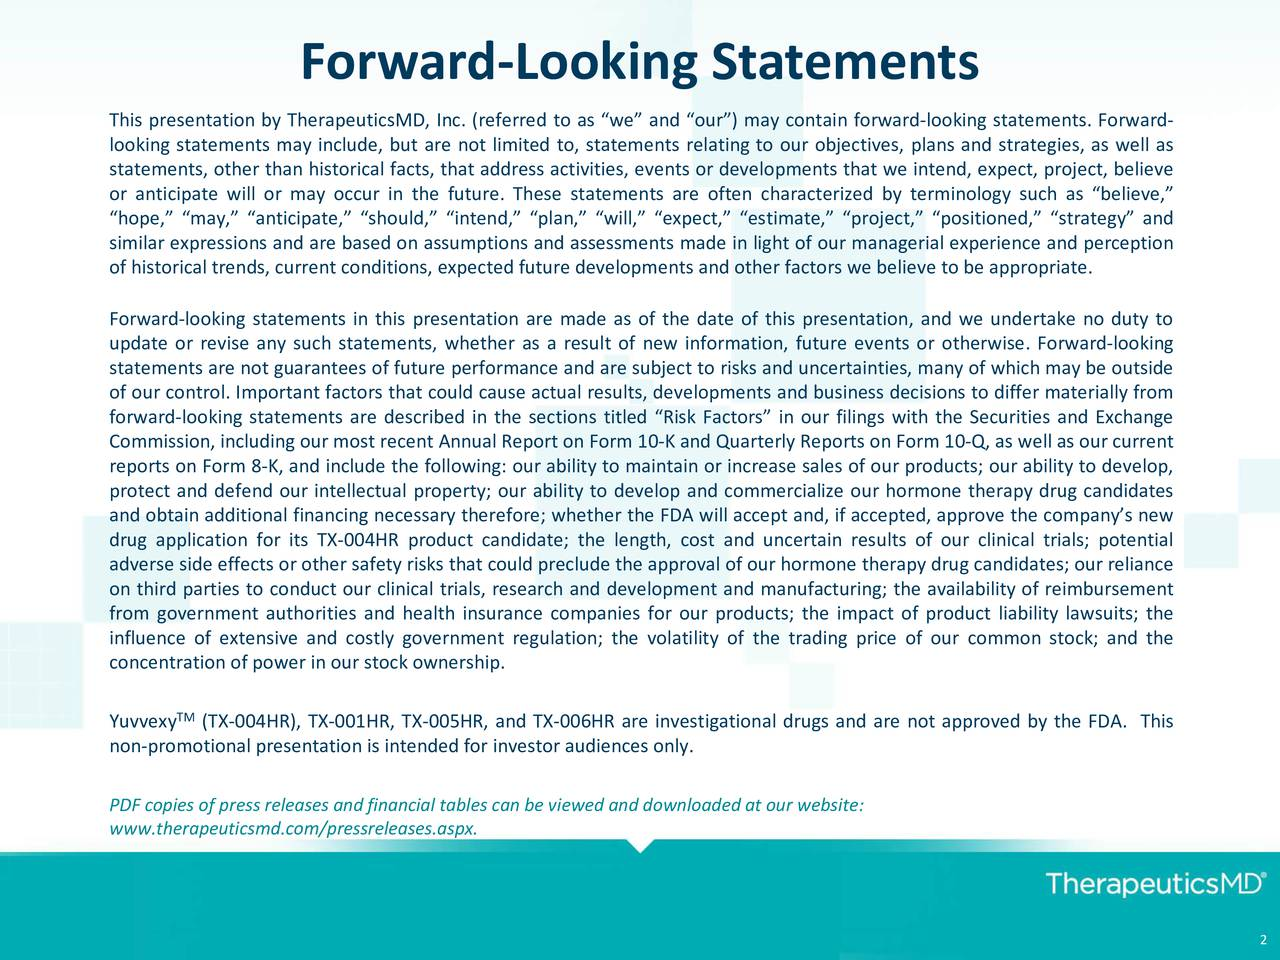 This presentation by TherapeuticsMD, Inc. (referred to as we and our) may contain forward-looking statements. Forward- looking statements may include, but are not limited to, statements relating to our objectives, plans and strategies, as well as statements, other than historical facts, that address activities, events or developments that we intend, expect, project, believe or anticipate will or may occur in the future. These statements are often characterized by terminology such as believe, hope, may, anticipate, should, intend, plan, will, expect, estimate, project, positioned, strategy and similar expressions and are based on assumptions and assessments made in light of our managerial experience and perception of historical trends, current conditions, expected future developments and other factors we believe to be appropriate. Forward-looking statements in this presentation are made as of the date of this presentation, and we undertake no duty to update or revise any such statements, whether as a result of new information, future events or otherwise. Forward-looking statements are not guarantees of future performance and are subject to risks and uncertainties, many of which may be outside of our control. Important factors that could cause actual results, developments and business decisions to differ materially from forward-looking statements are described in the sections titled Risk Factors in our filings with the Securities and Exchange Commission, including our most recent Annual Report on Form 10-K and Quarterly Reports on Form 10-Q, as well as our current reports on Form 8-K, and include the following: our ability to maintain or increase sales of our products; our ability to develop, protect and defend our intellectual property; our ability to develop and commercialize our hormone therapy drug candidates and obtain additional financing necessary therefore; whether the FDA will accept and, if accepted, approve the companys new drug application for its TX-004HR